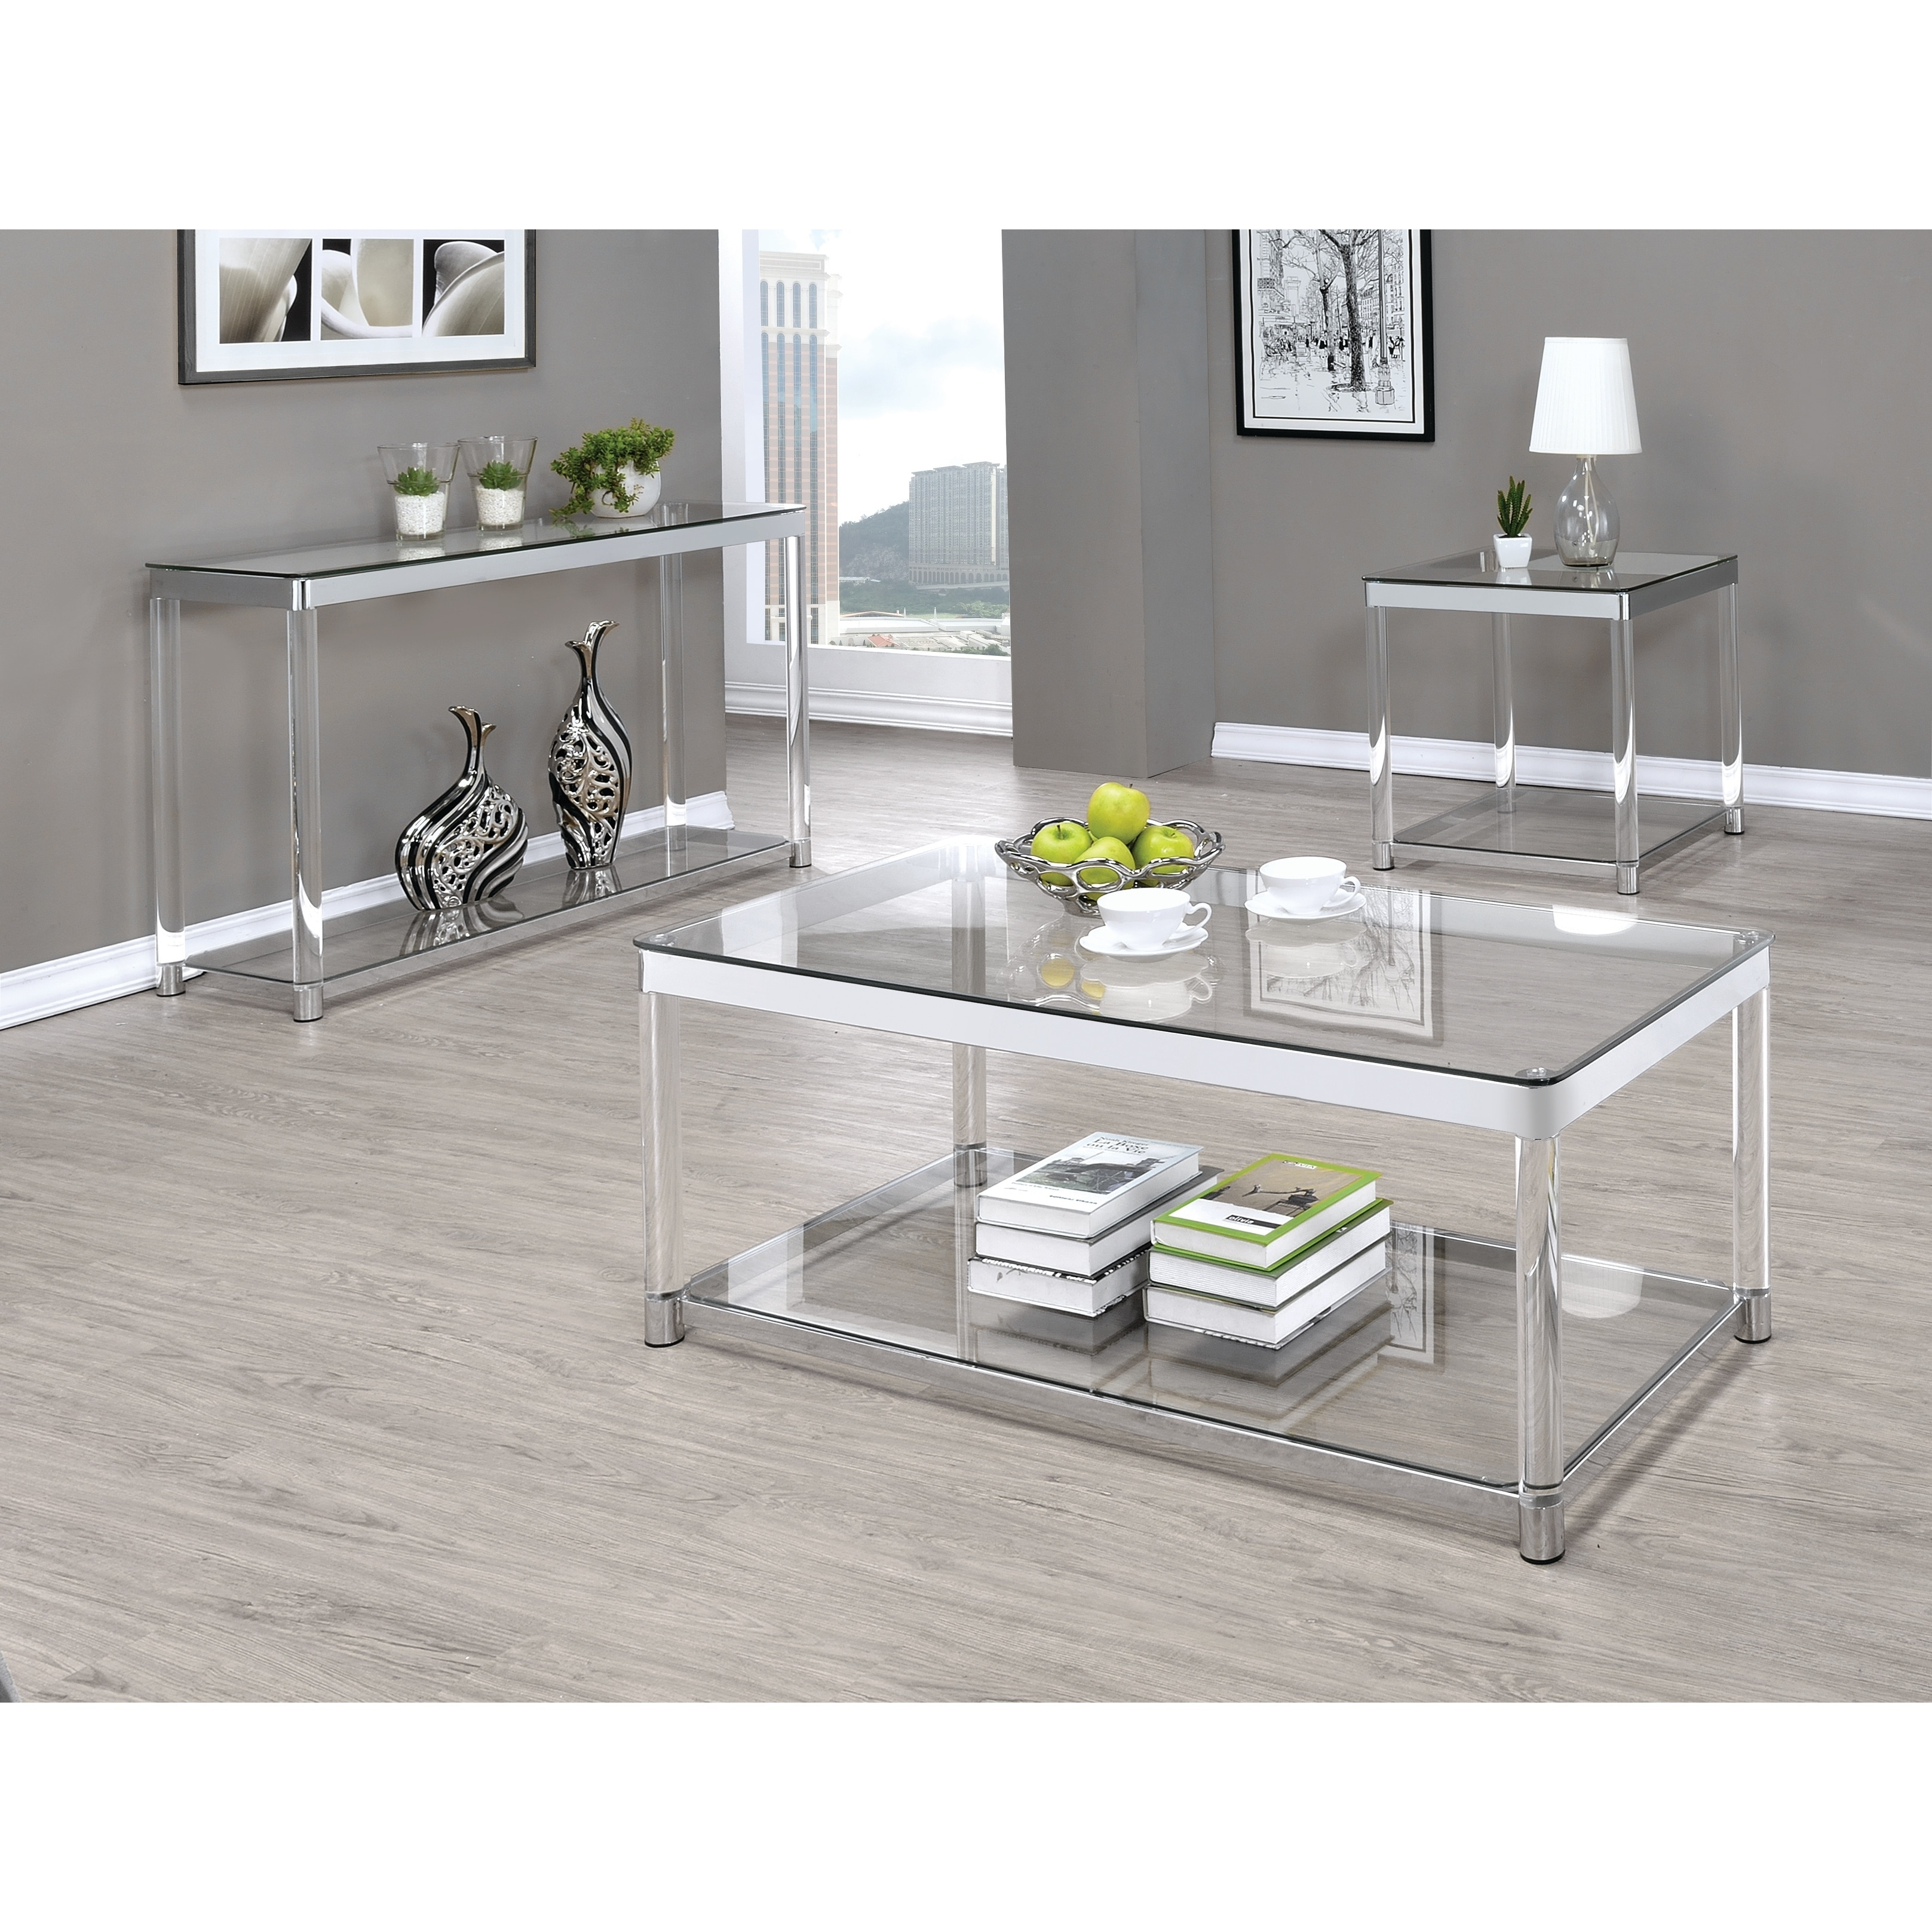 Shop Contemporary Chrome Glass Top And Acrylic Legs Sofa Table